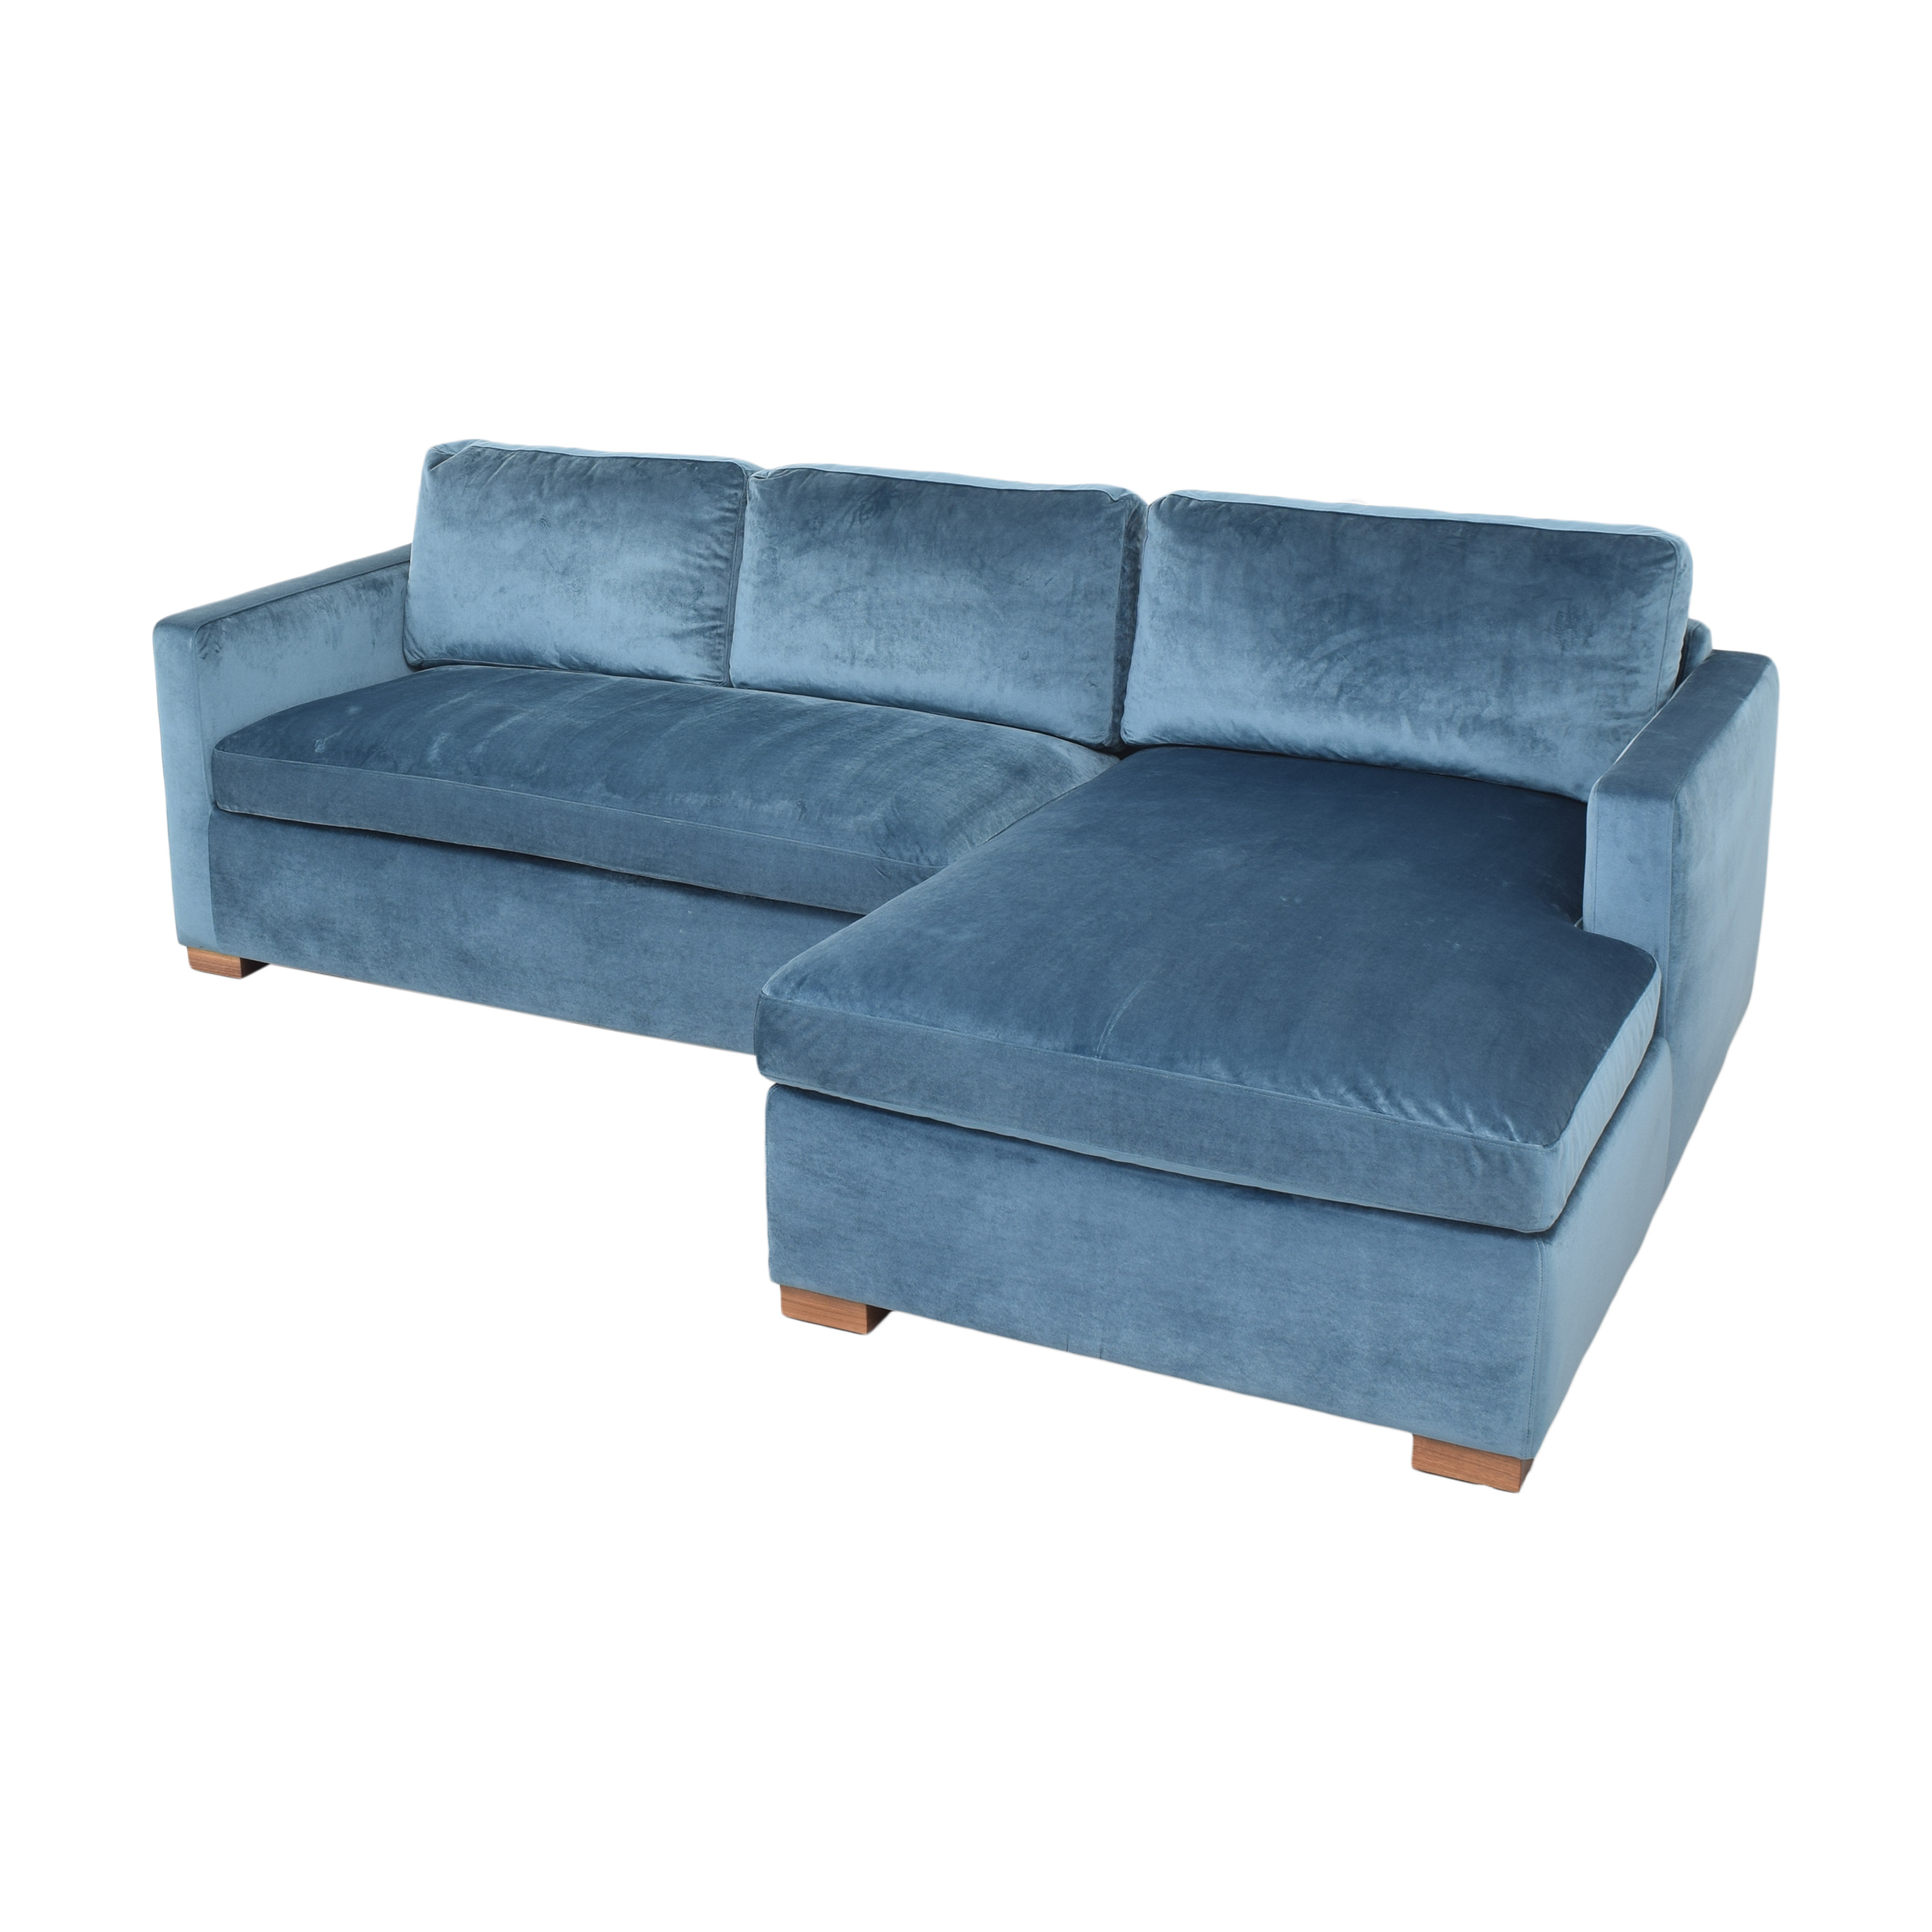 Interior Define Interior Define Charly Sectional Sofa with Chaise used